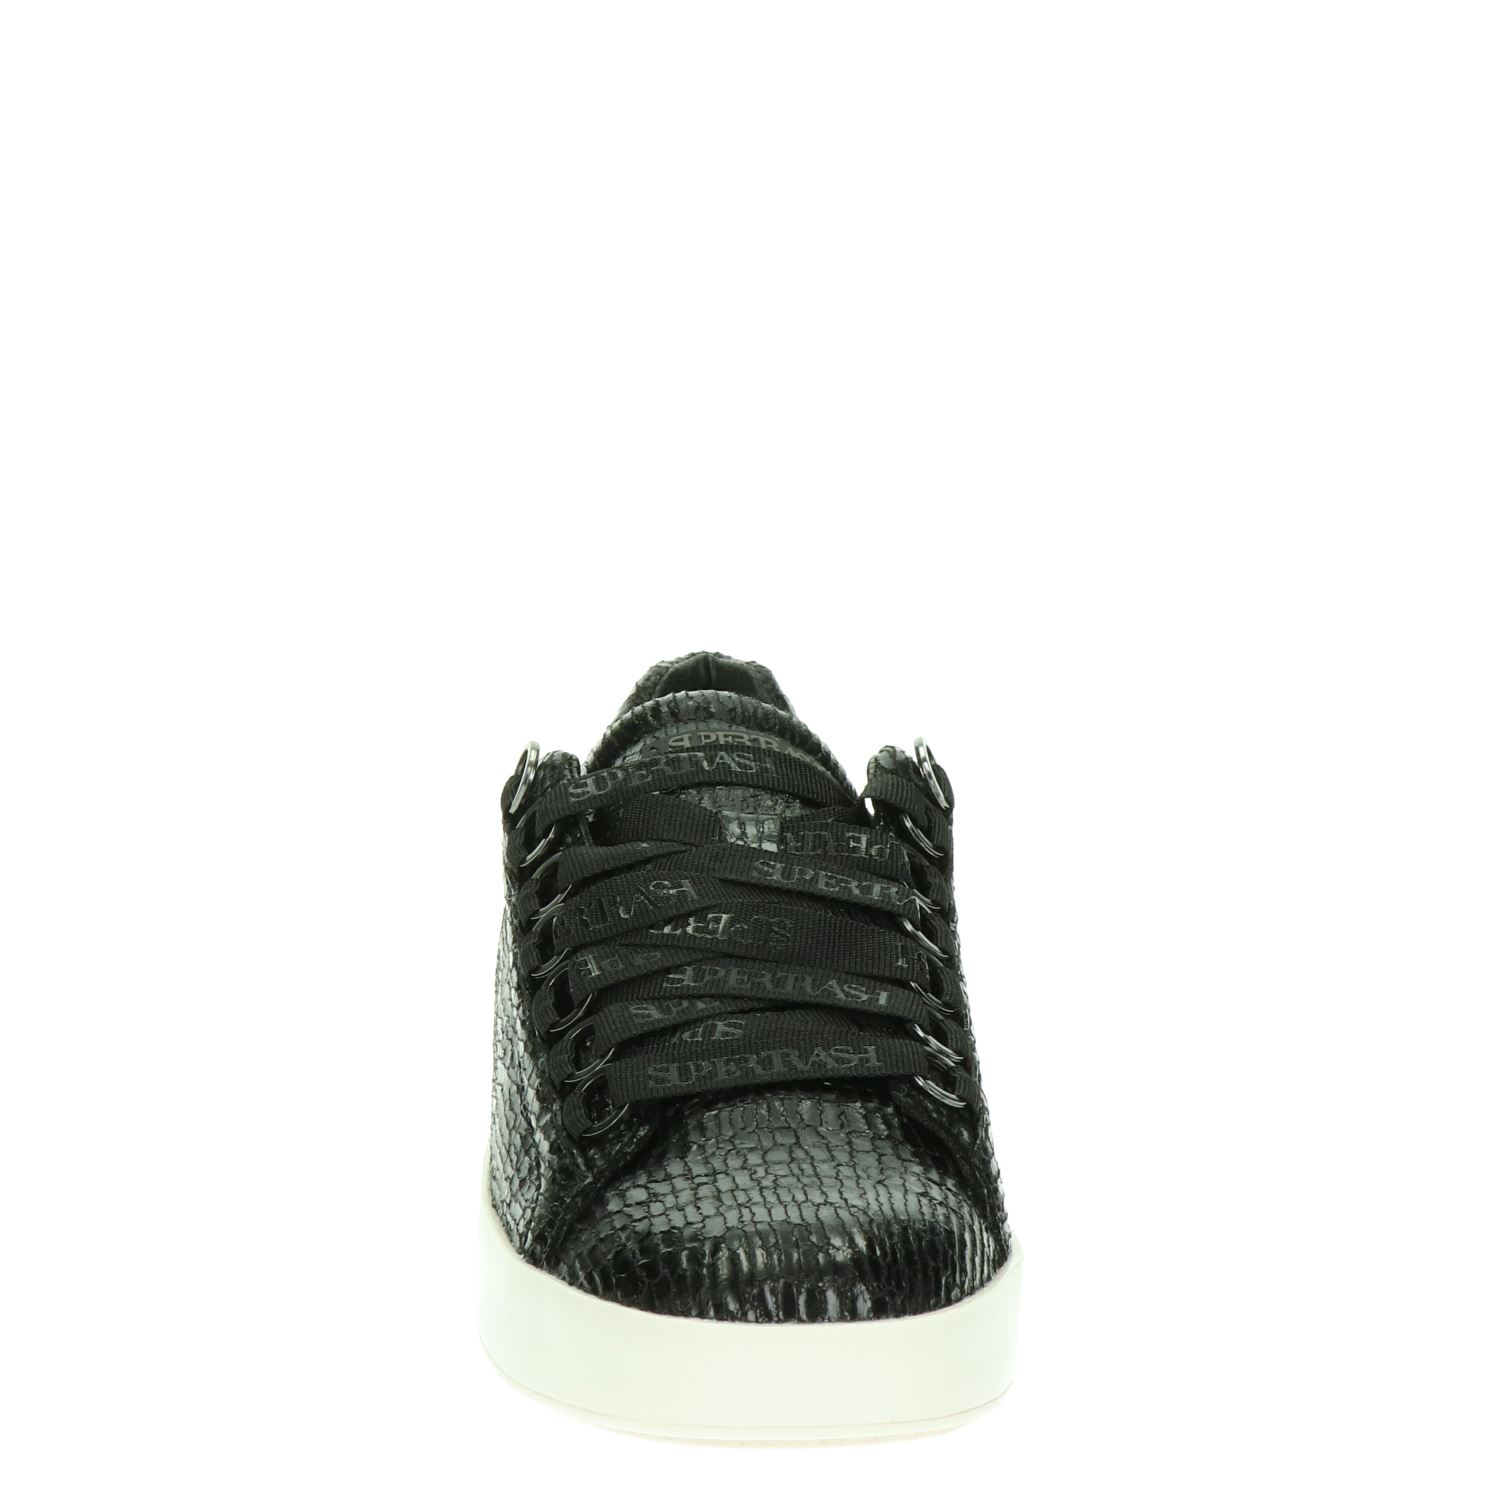 Supertrash Lina Low - Lage sneakers voor dames - Zwart p7xGmF8